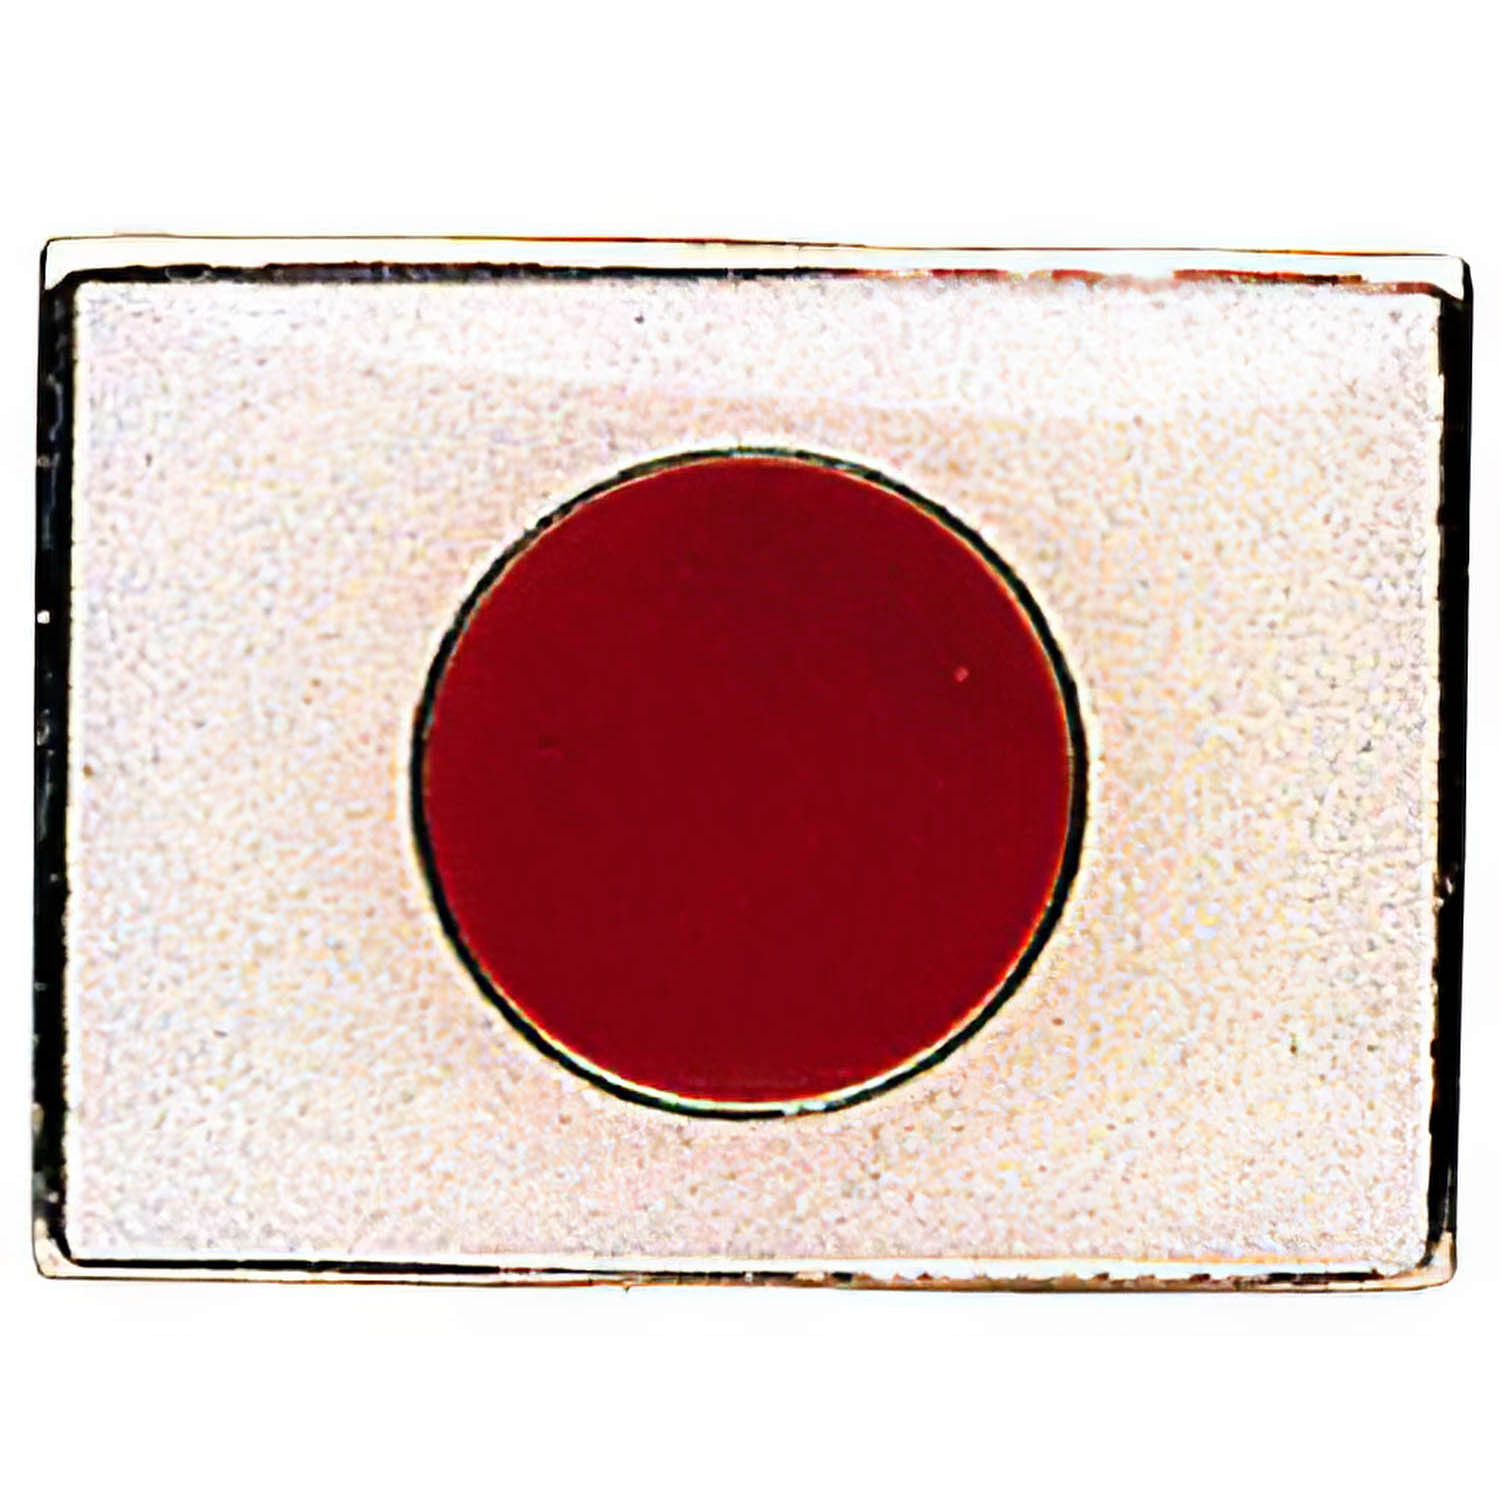 Japanese Flag Pin Your Price - Japanese flag